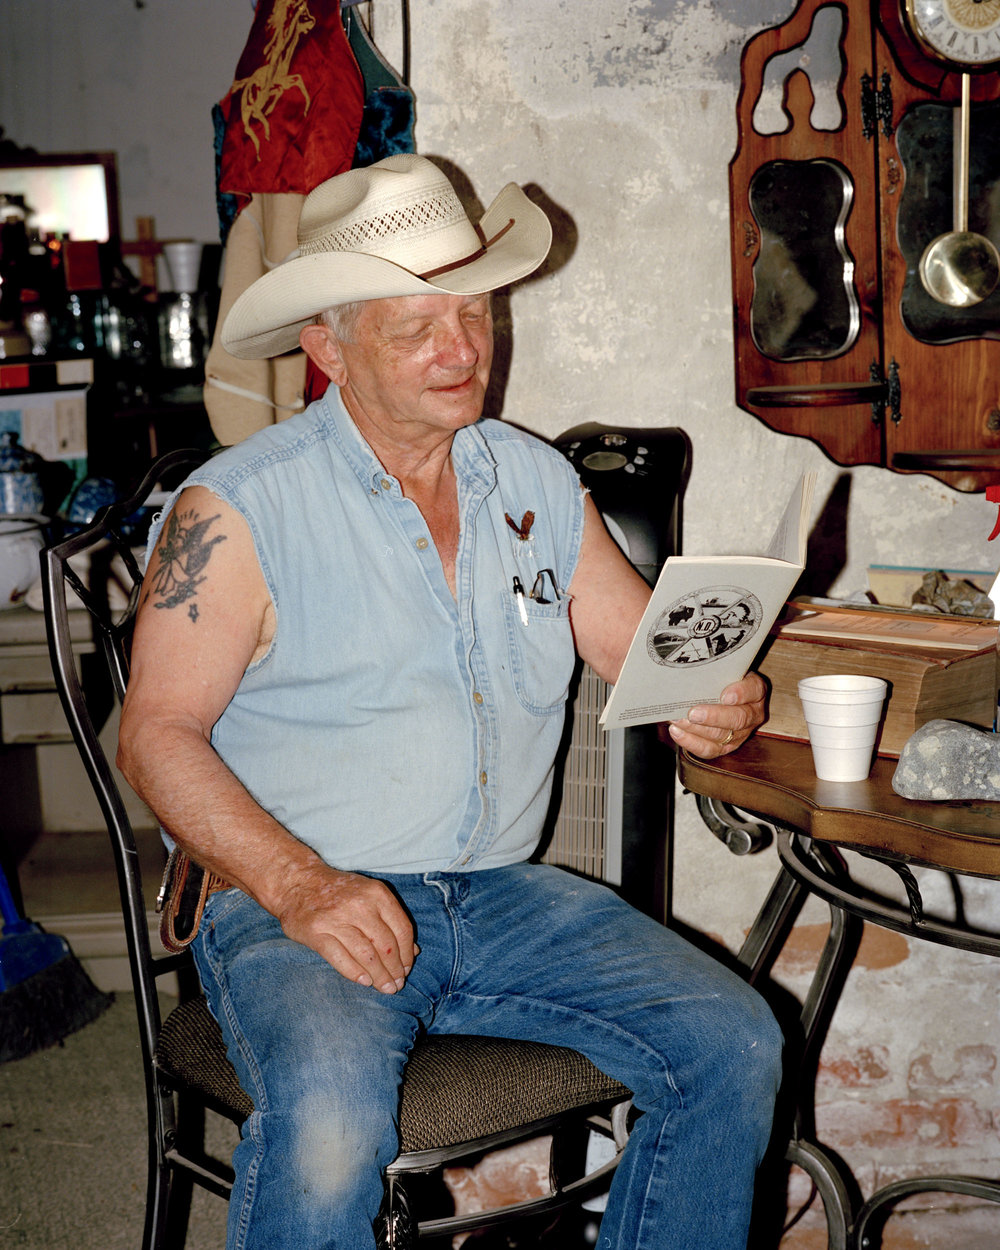 Joe antique store owner.jpg